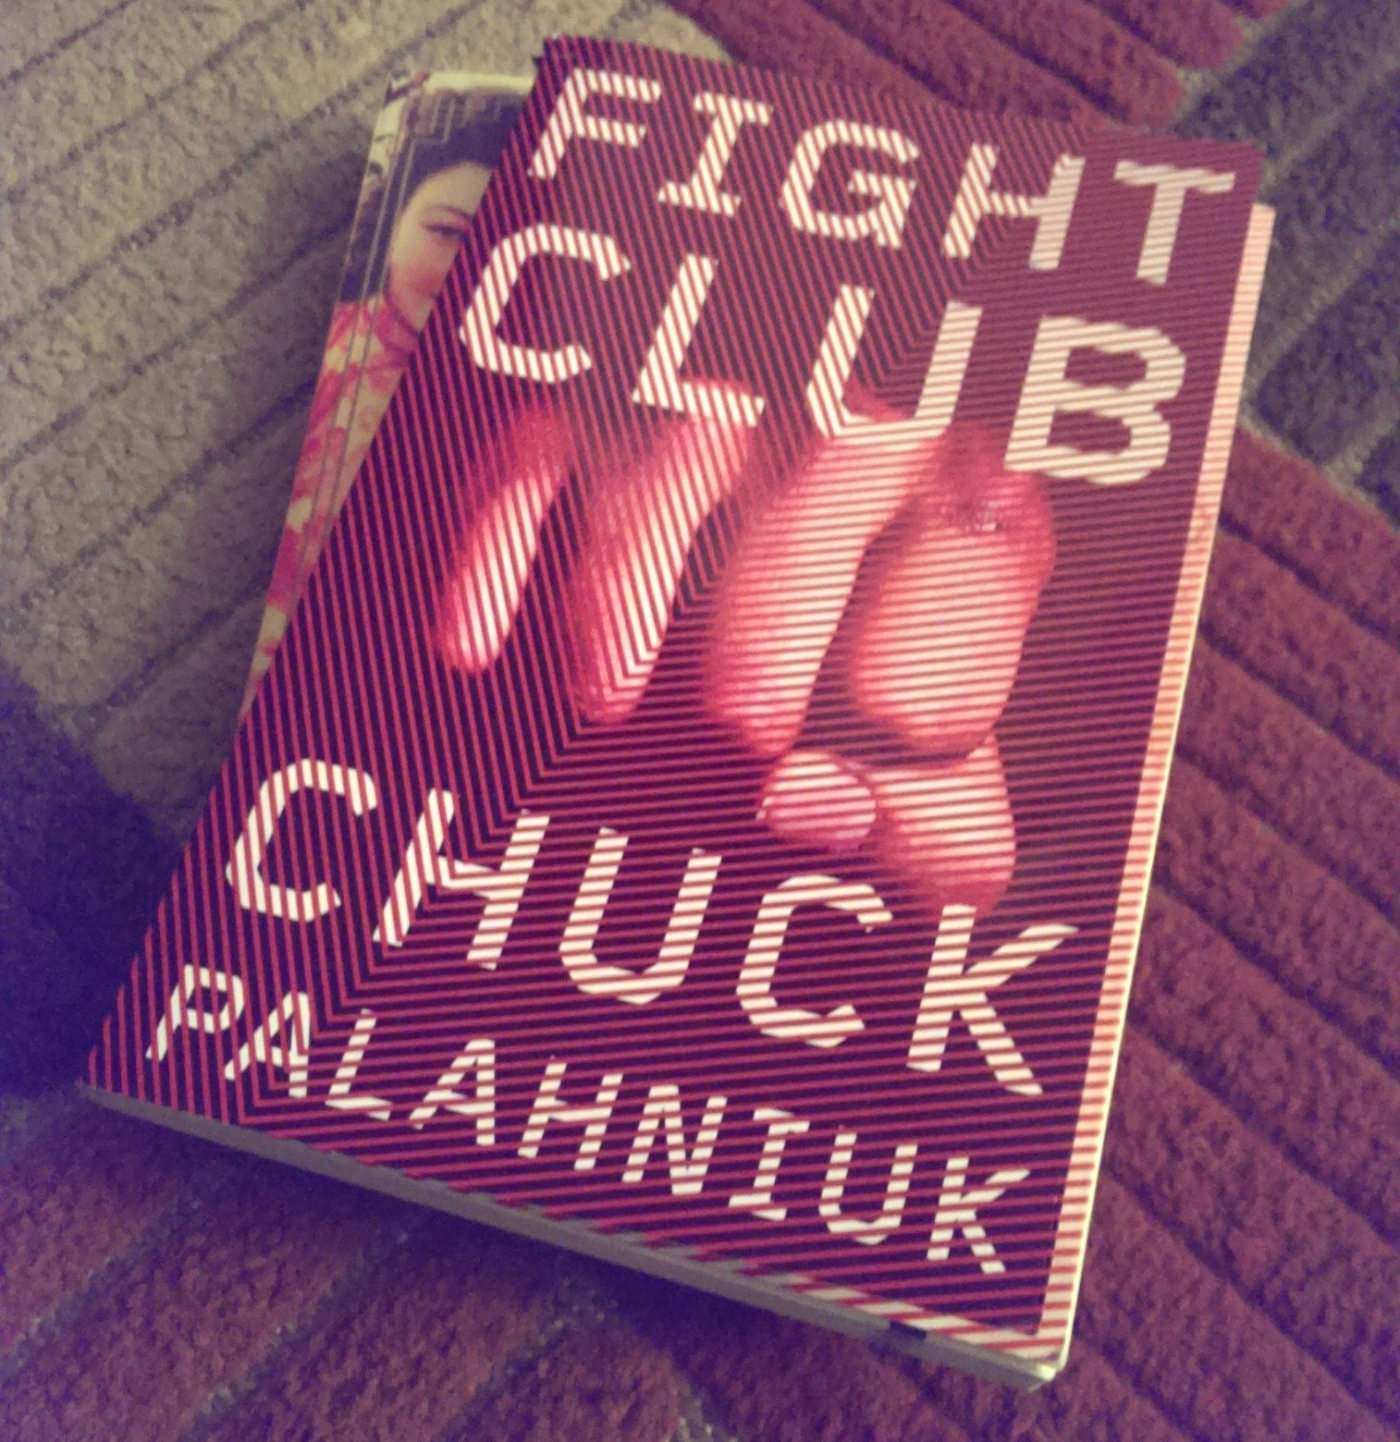 fight club essay identity The tools you need to write a quality essay or  taps out the fight is over rule #4: fight club exists only between the  know his true identity.